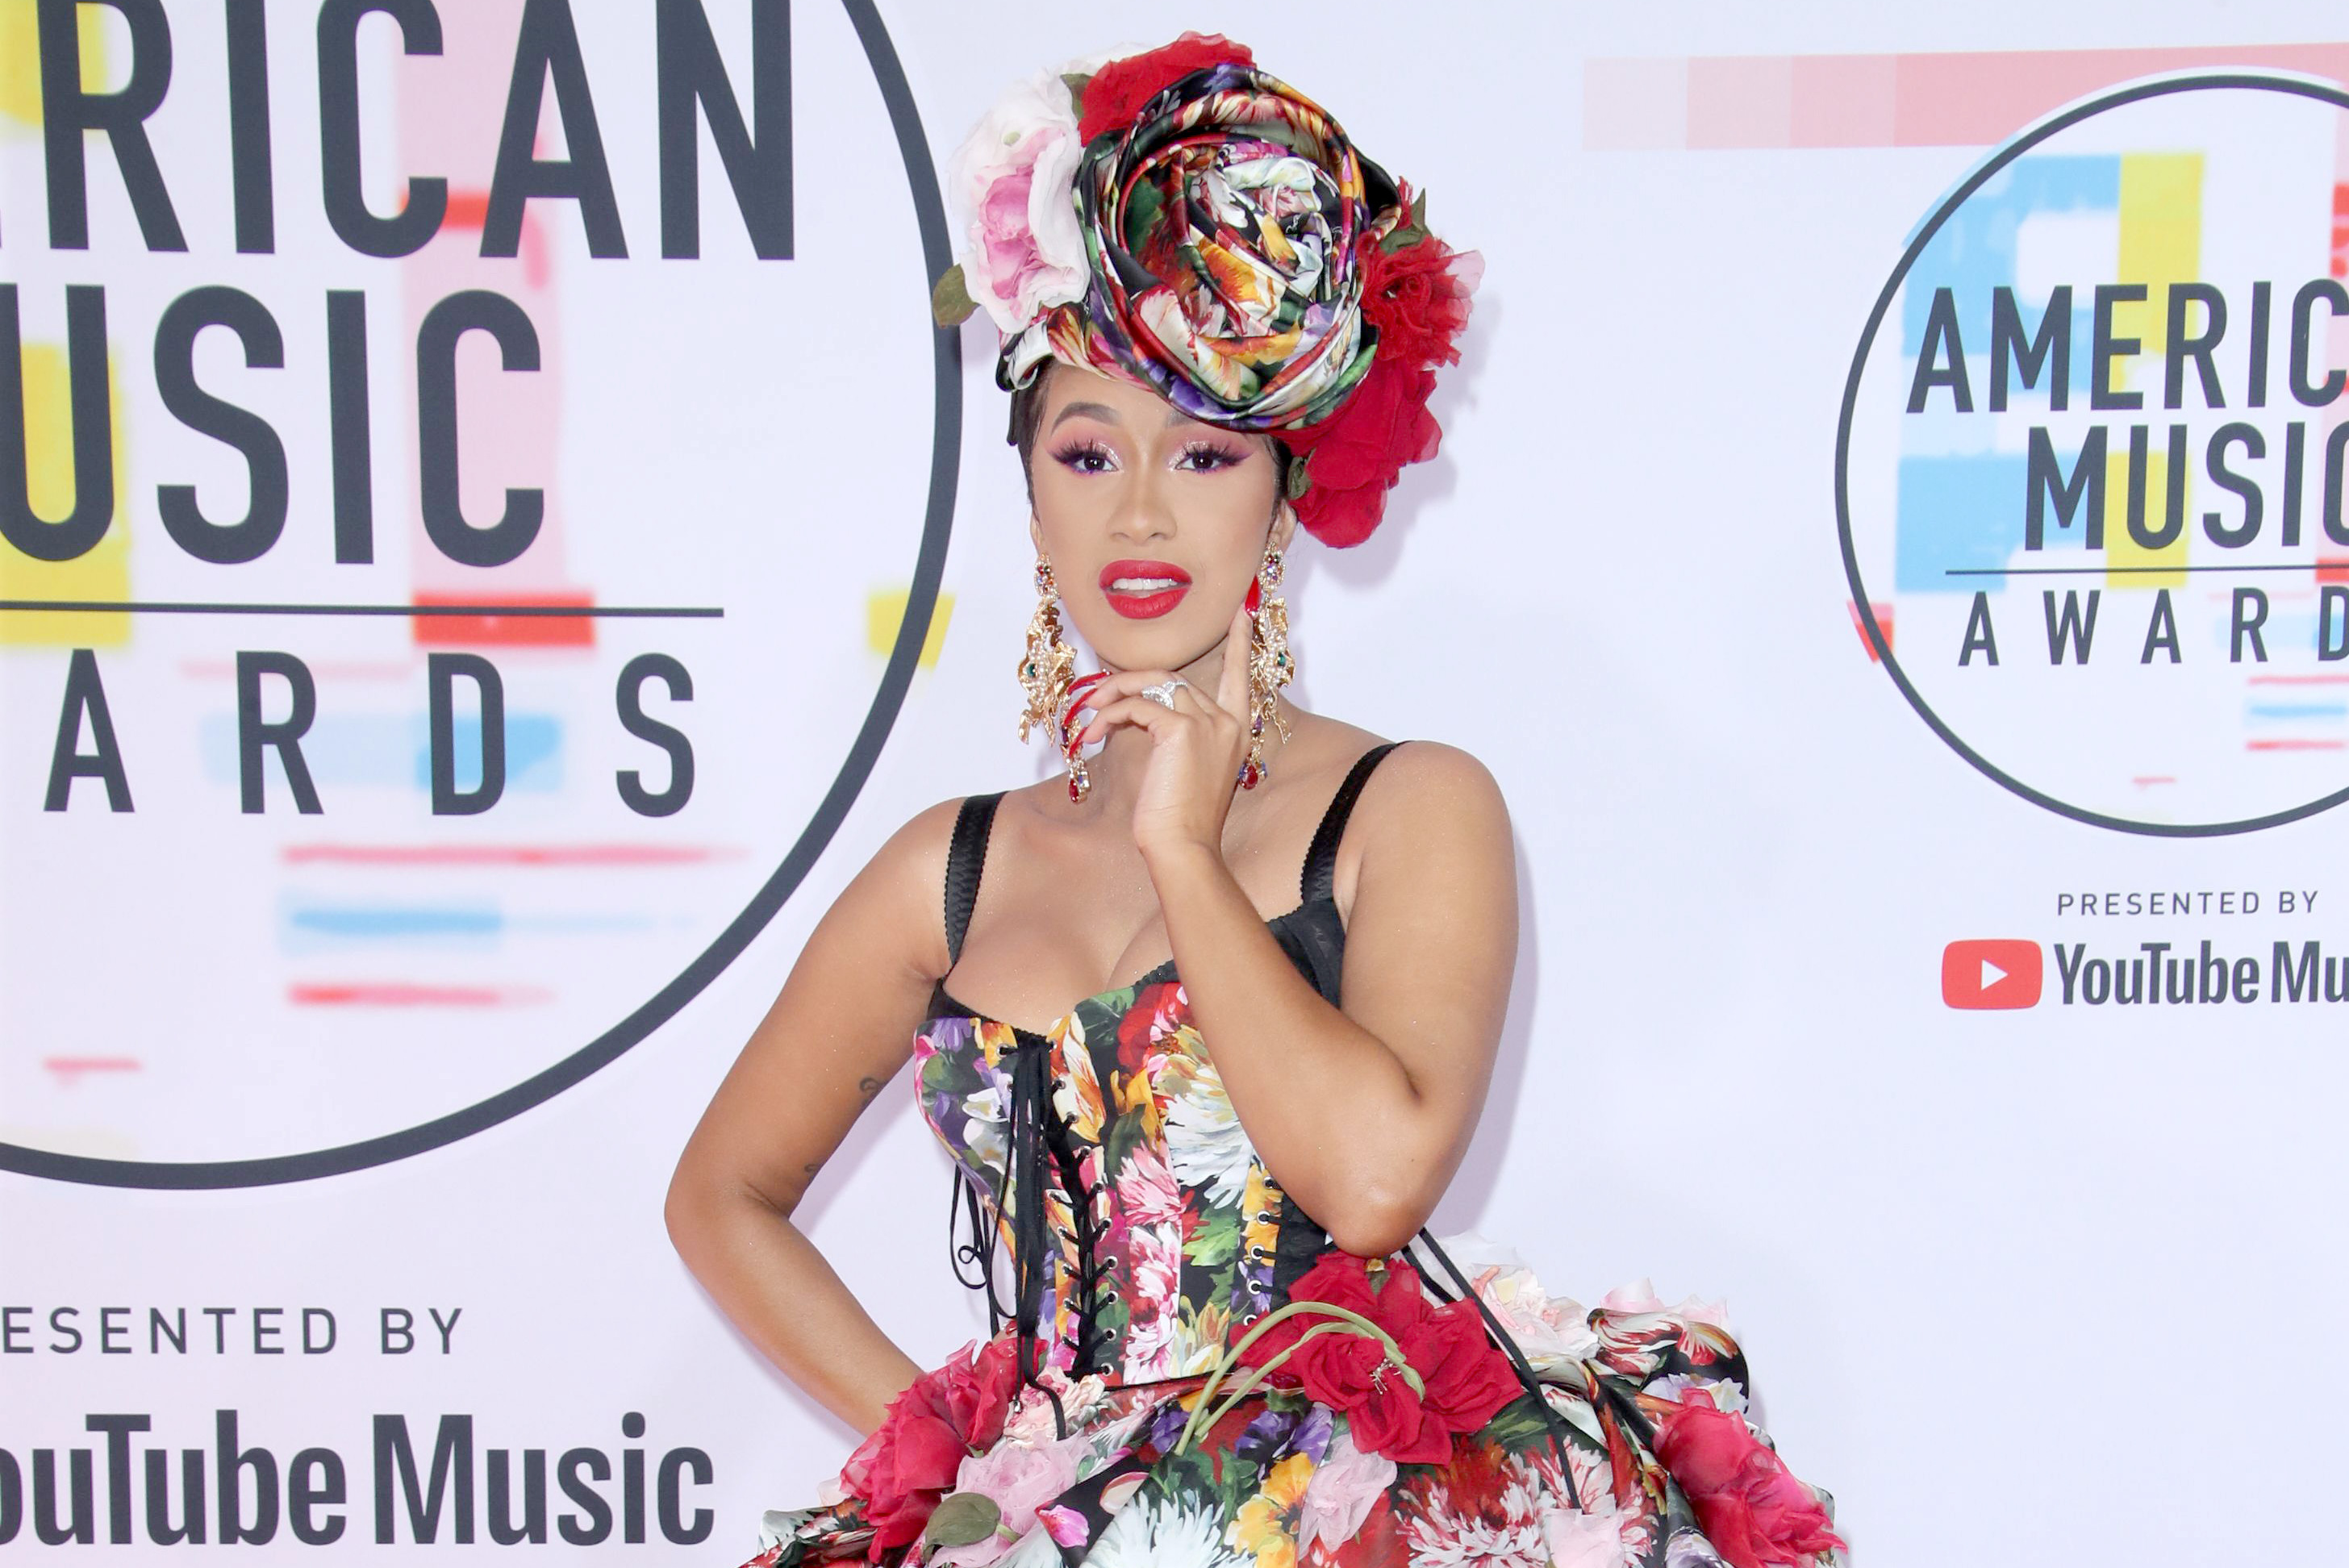 Mandatory Credit: Photo by Matt Baron/REX/Shutterstock (9919808et) Cardi B American Music Awards, Arrivals, Los Angeles, USA - 09 Oct 2018